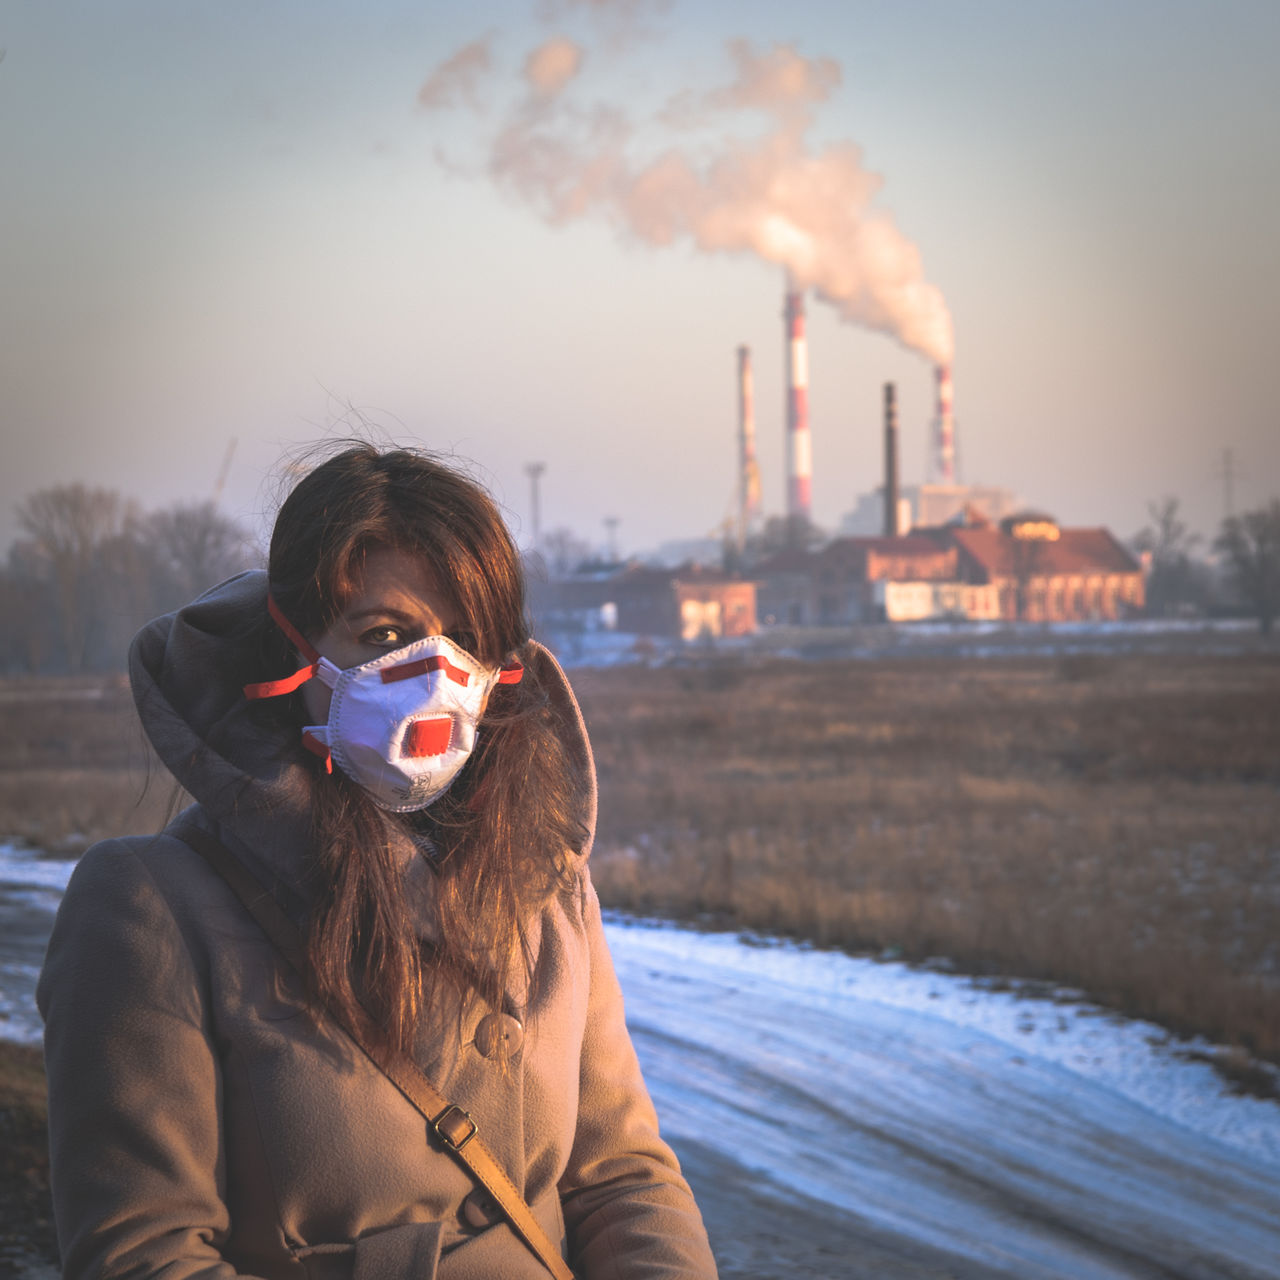 Breathing Mask City Factory Health Health Risk People Pollution Pollution Mask Power Plant Smog Smoke Winter Women Young Adult Statement Political Problem